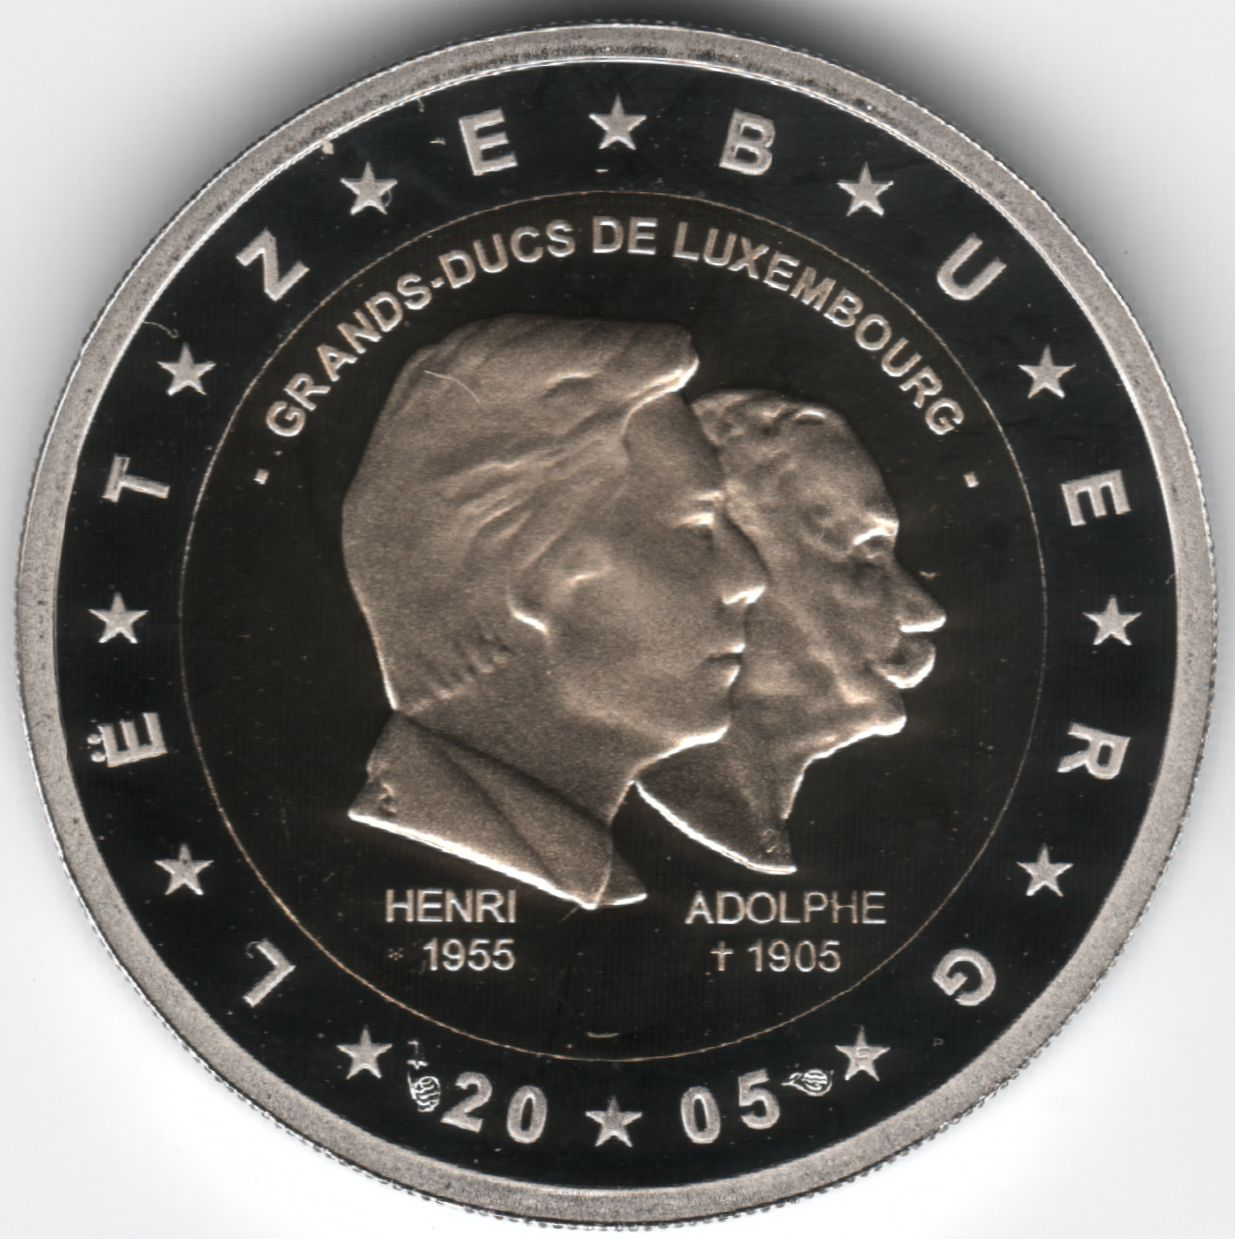 luxemburggedenk05proof.jpg